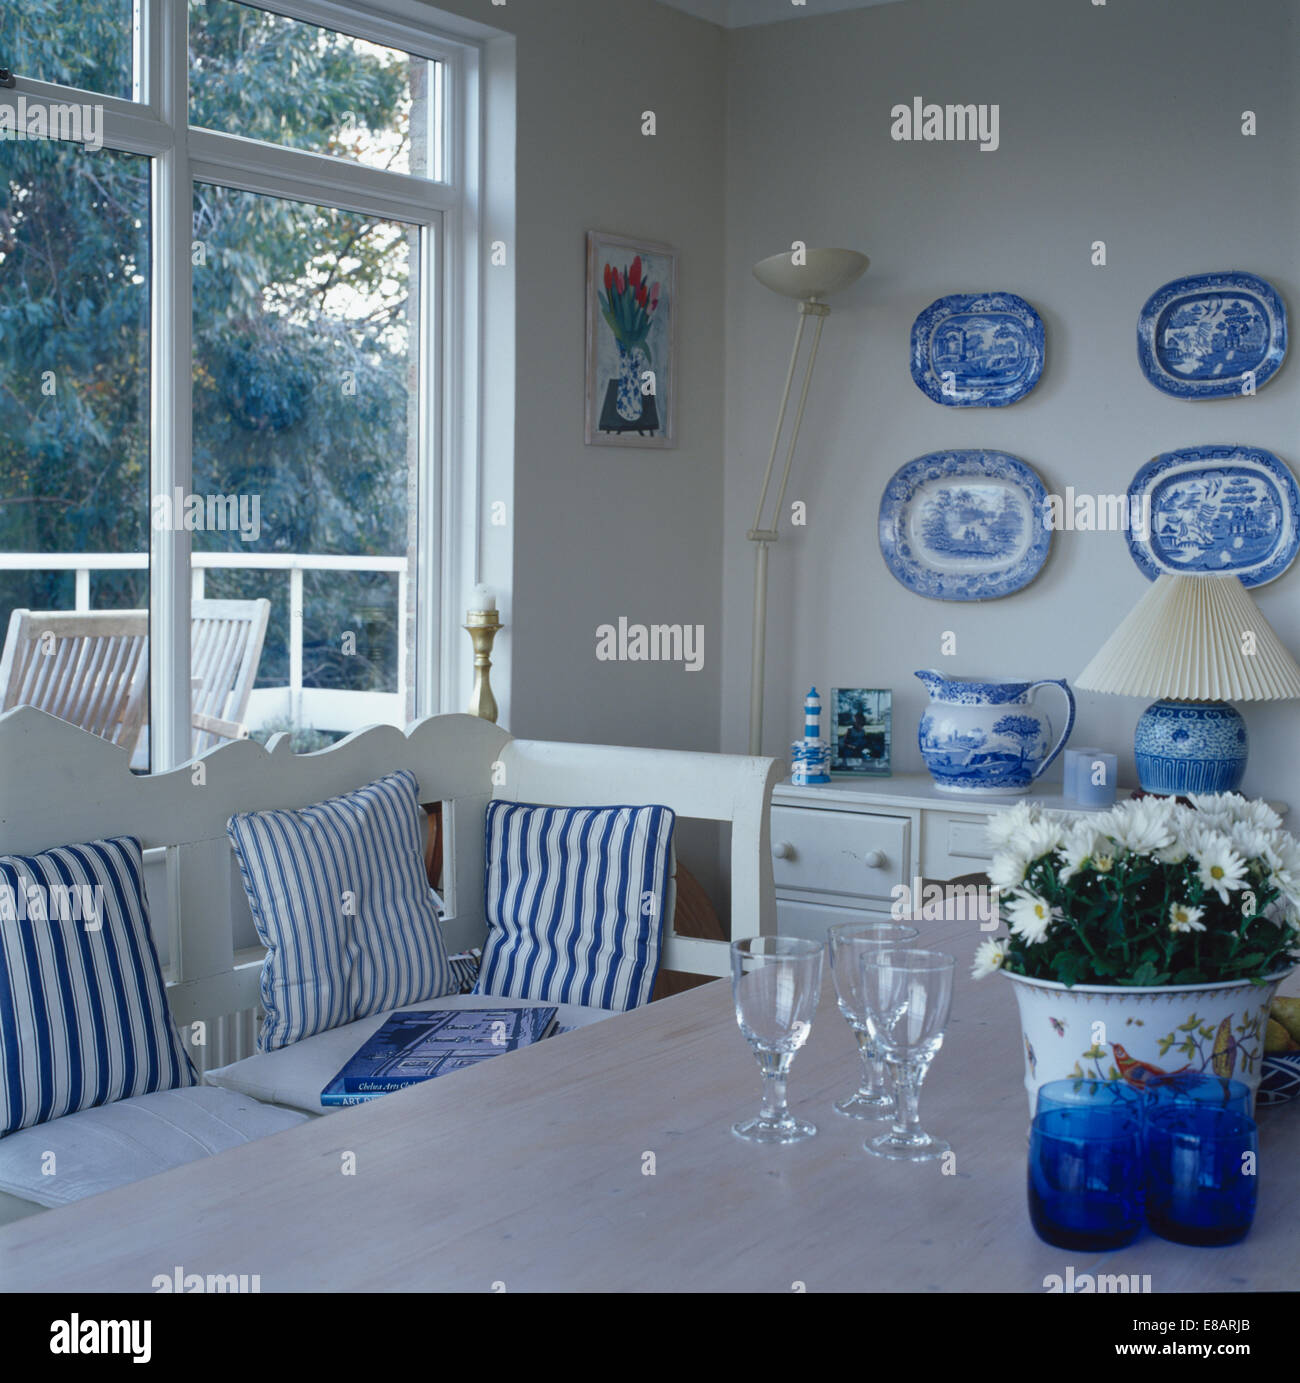 Collection Of Blue White Plates On Wall Of Dining Room With Blue Stock Photo Alamy